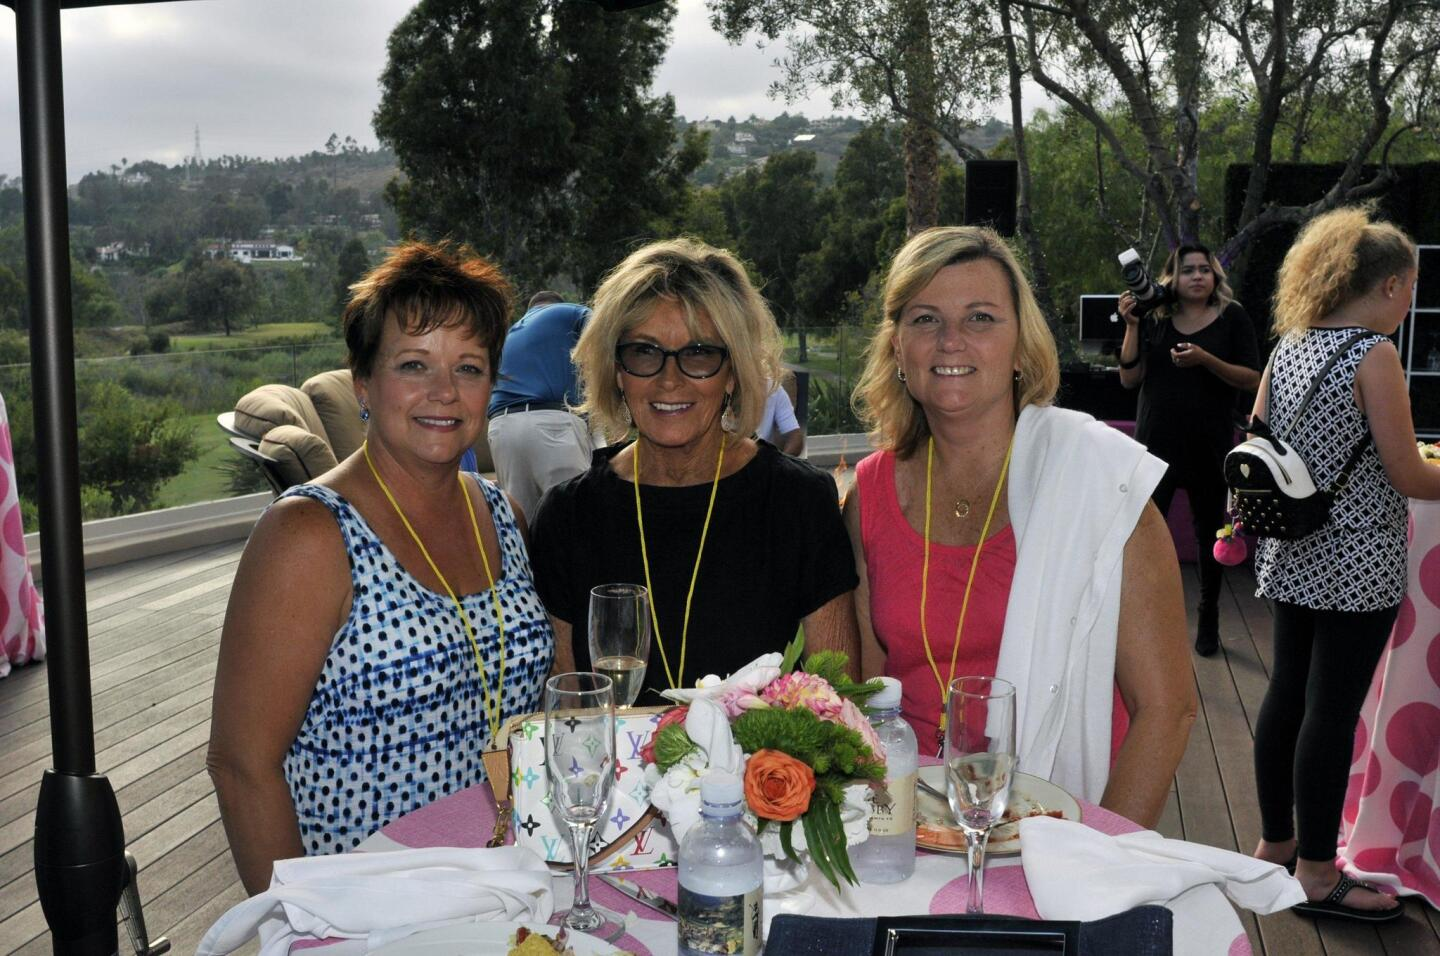 Member appreciation event held at The Crosby at RSF